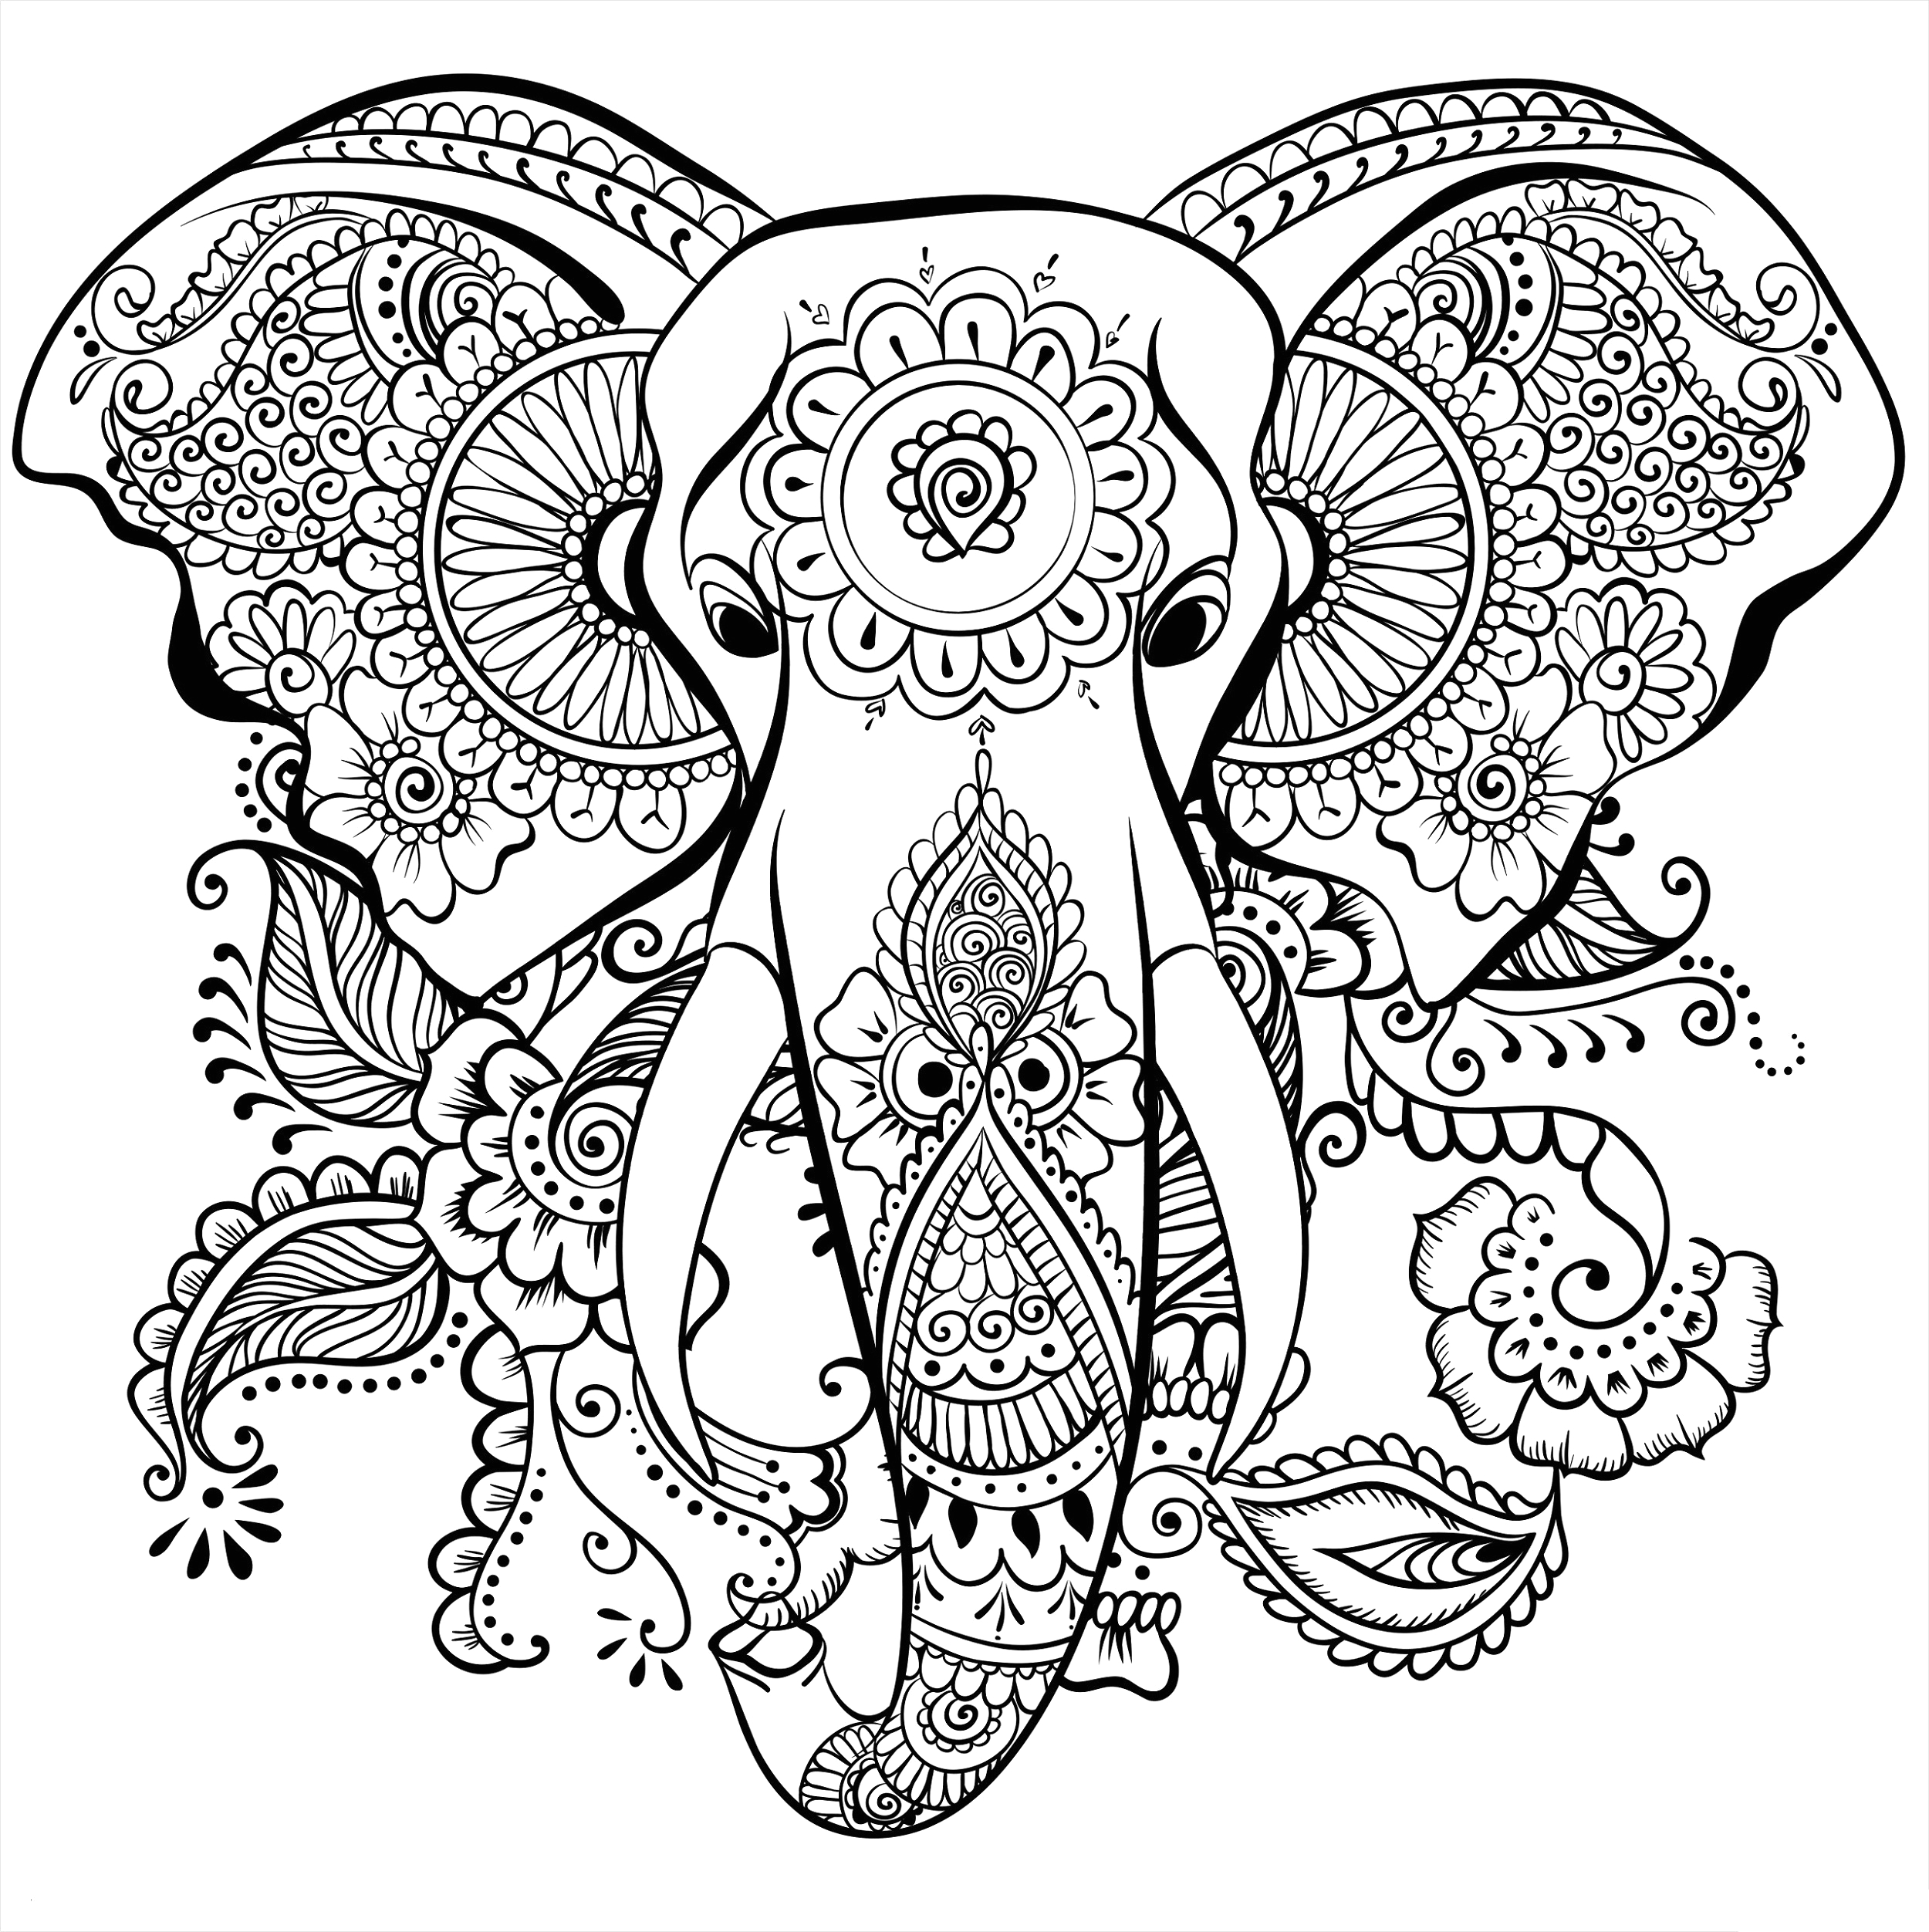 Free Printable Elephant Coloring Pages for Adults Adult Coloring Pages Elephant Free